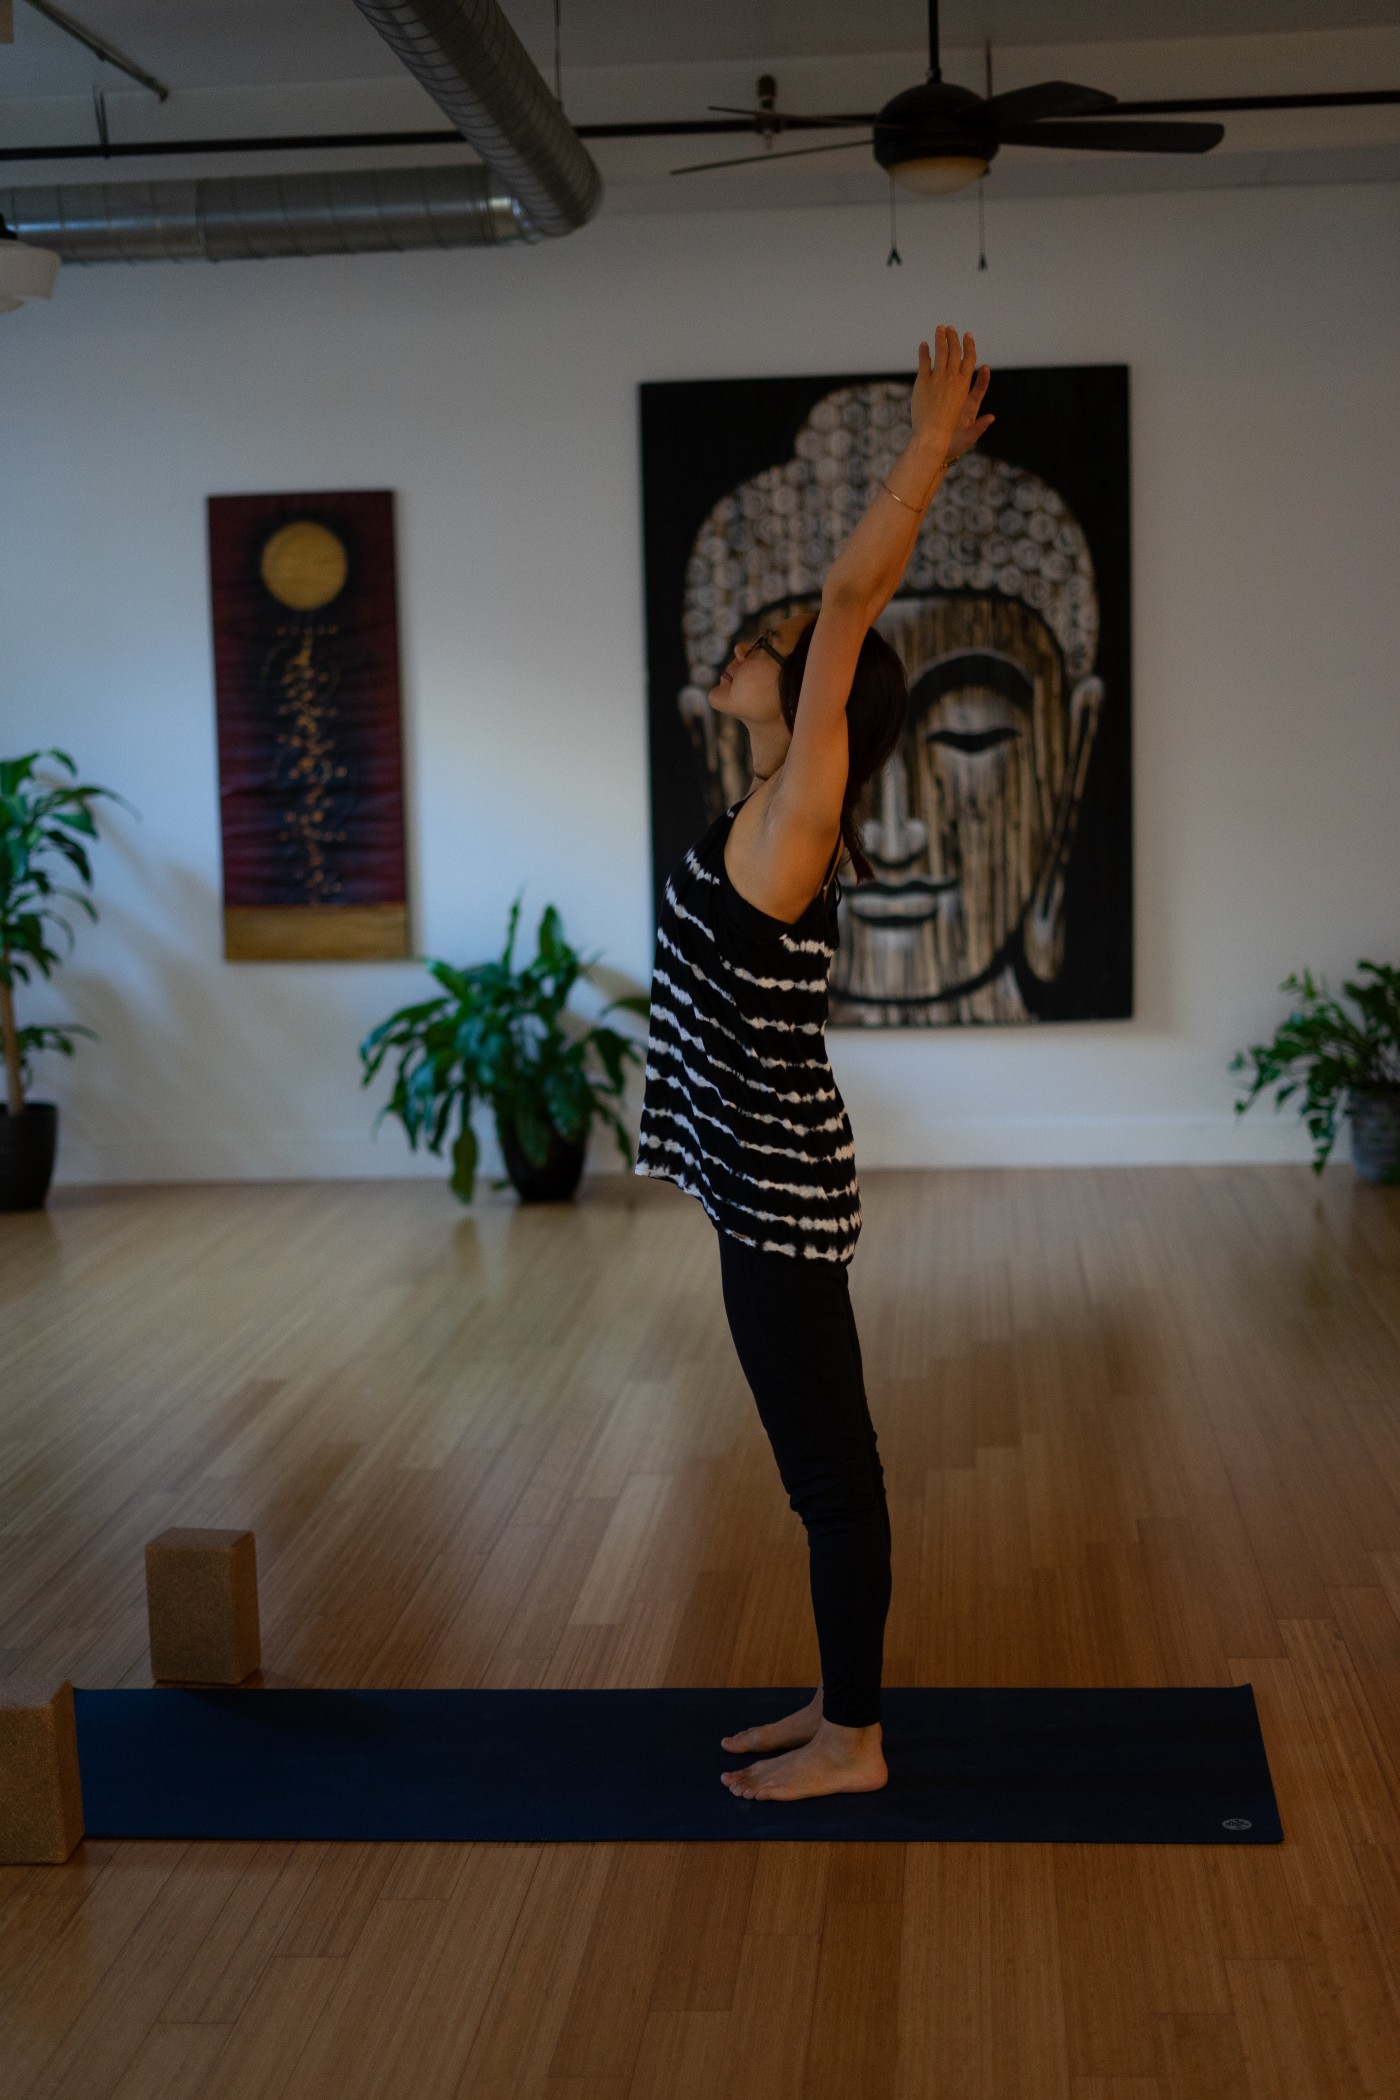 A woman standing in the middle of a brightly lit yoga studio. She is reaching up with her arms and gazing upward. In the background are two large paintings and three plants in pots.